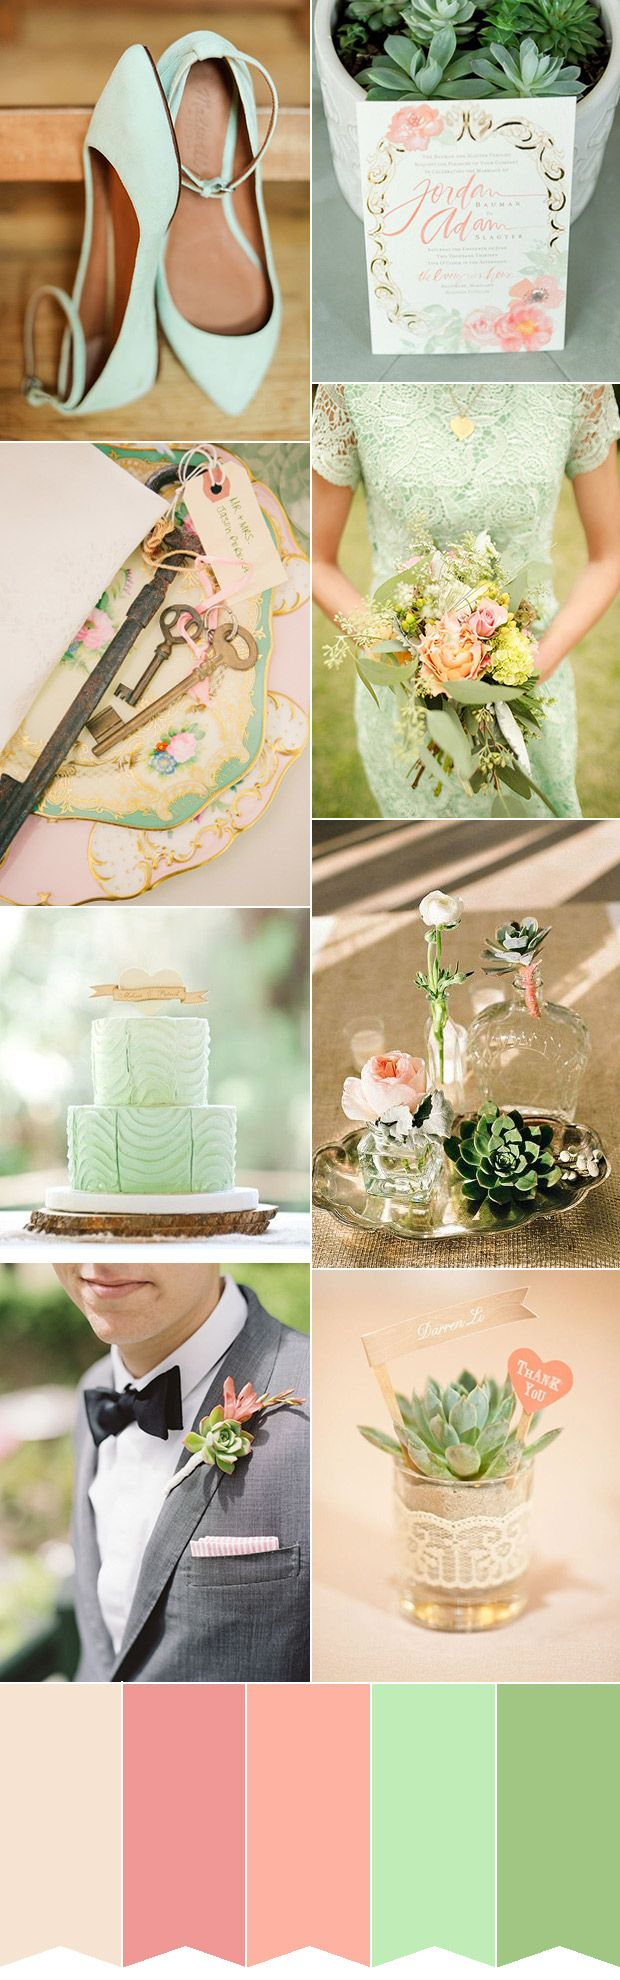 Gorgeous Fresh Mint and Pink Inspiration Colour Palette | www.onefabday.com